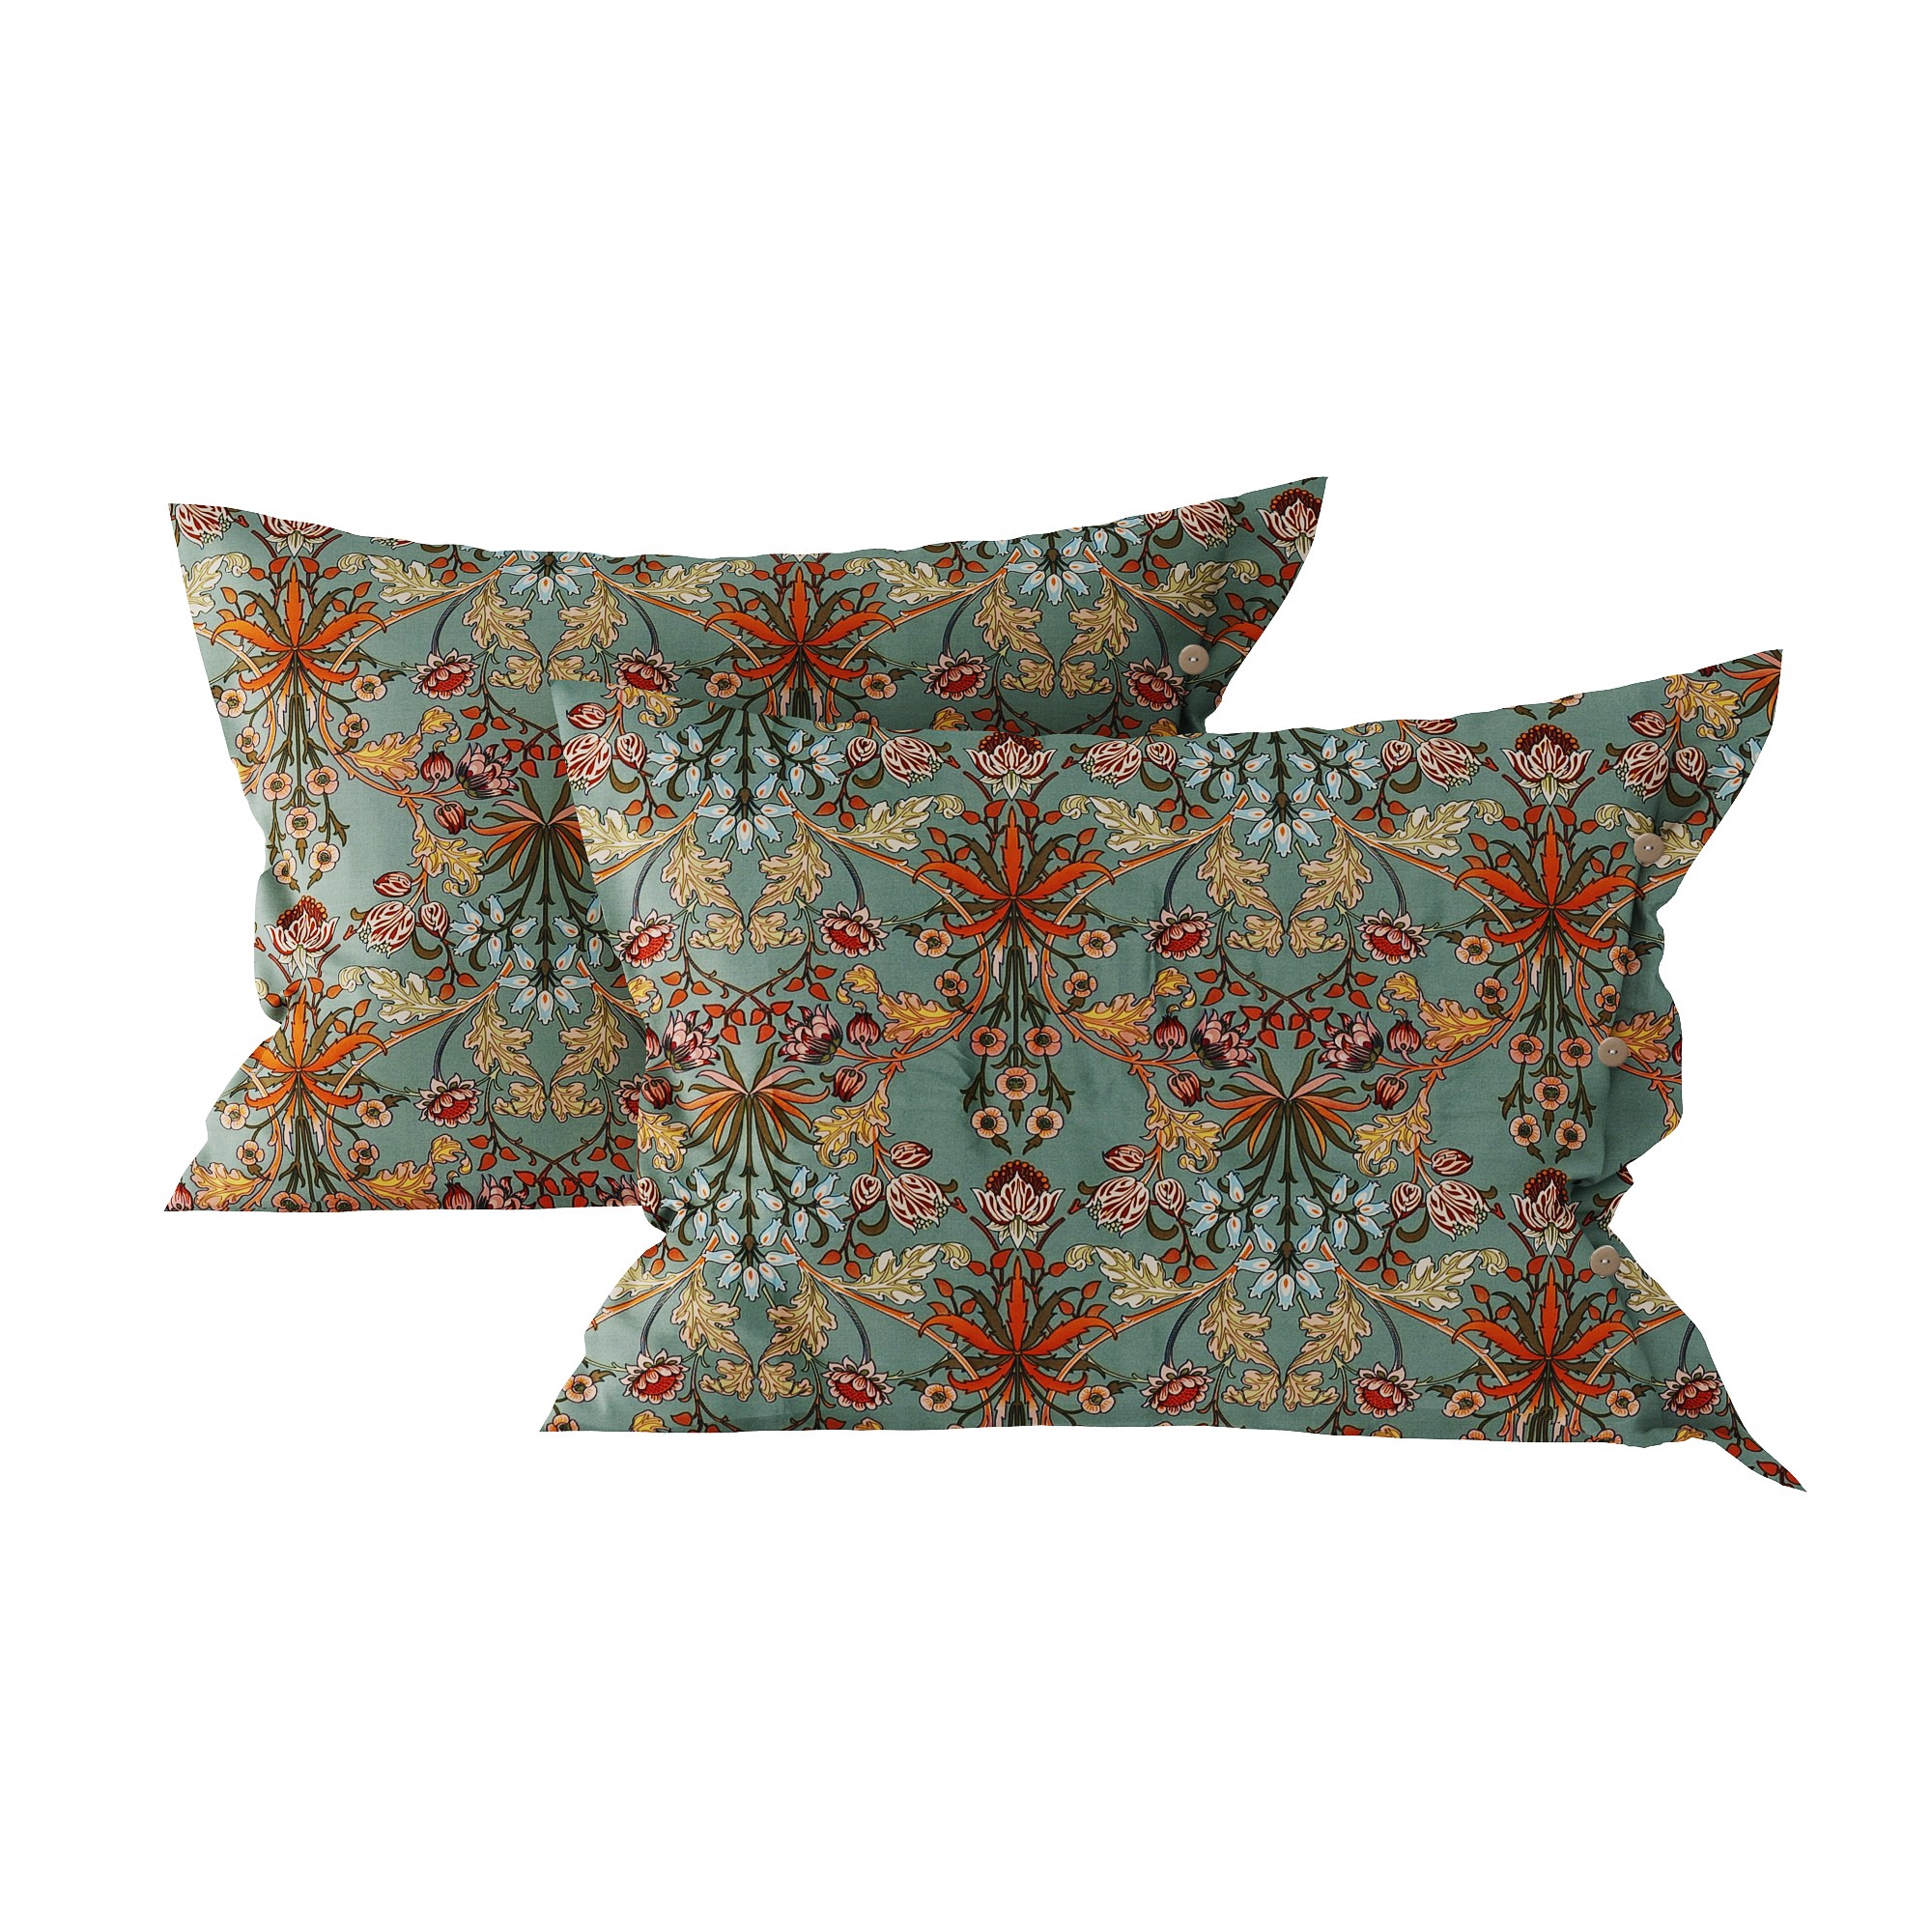 Pillow case 212 Vintage floral